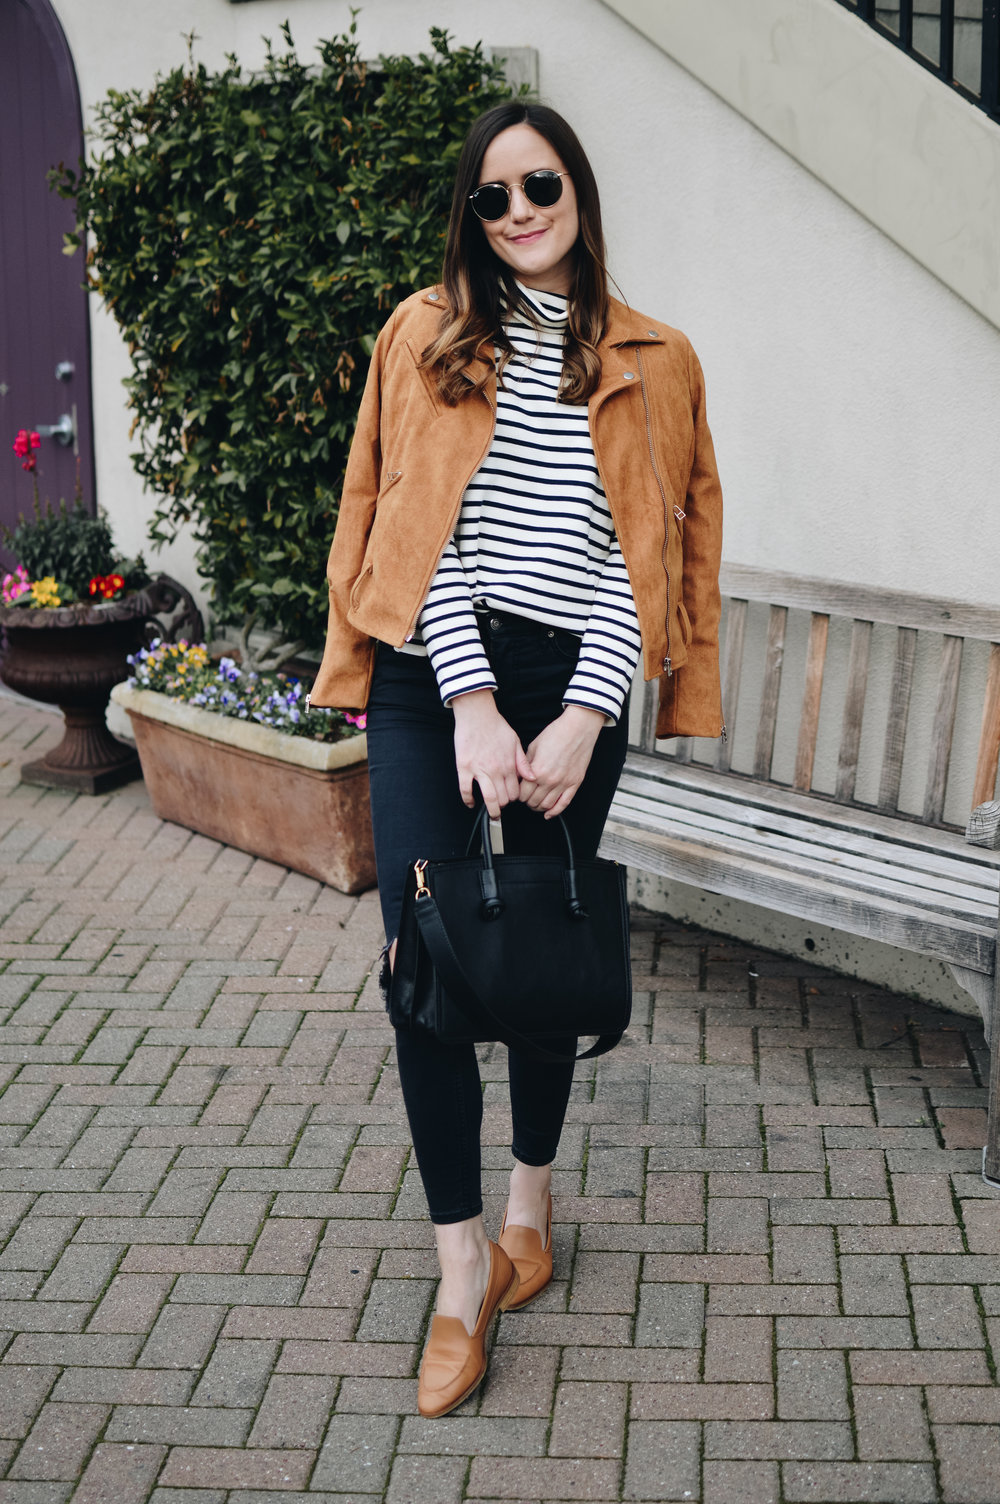 Shop the Look Below.  Madewell Top  |  Free People Jeans  |  Shopbop Jacket  - sold out, linking similar below |  Everlane Flats  |  Ray-Ban Sunglasses  |  Fossil Satchel  c/o